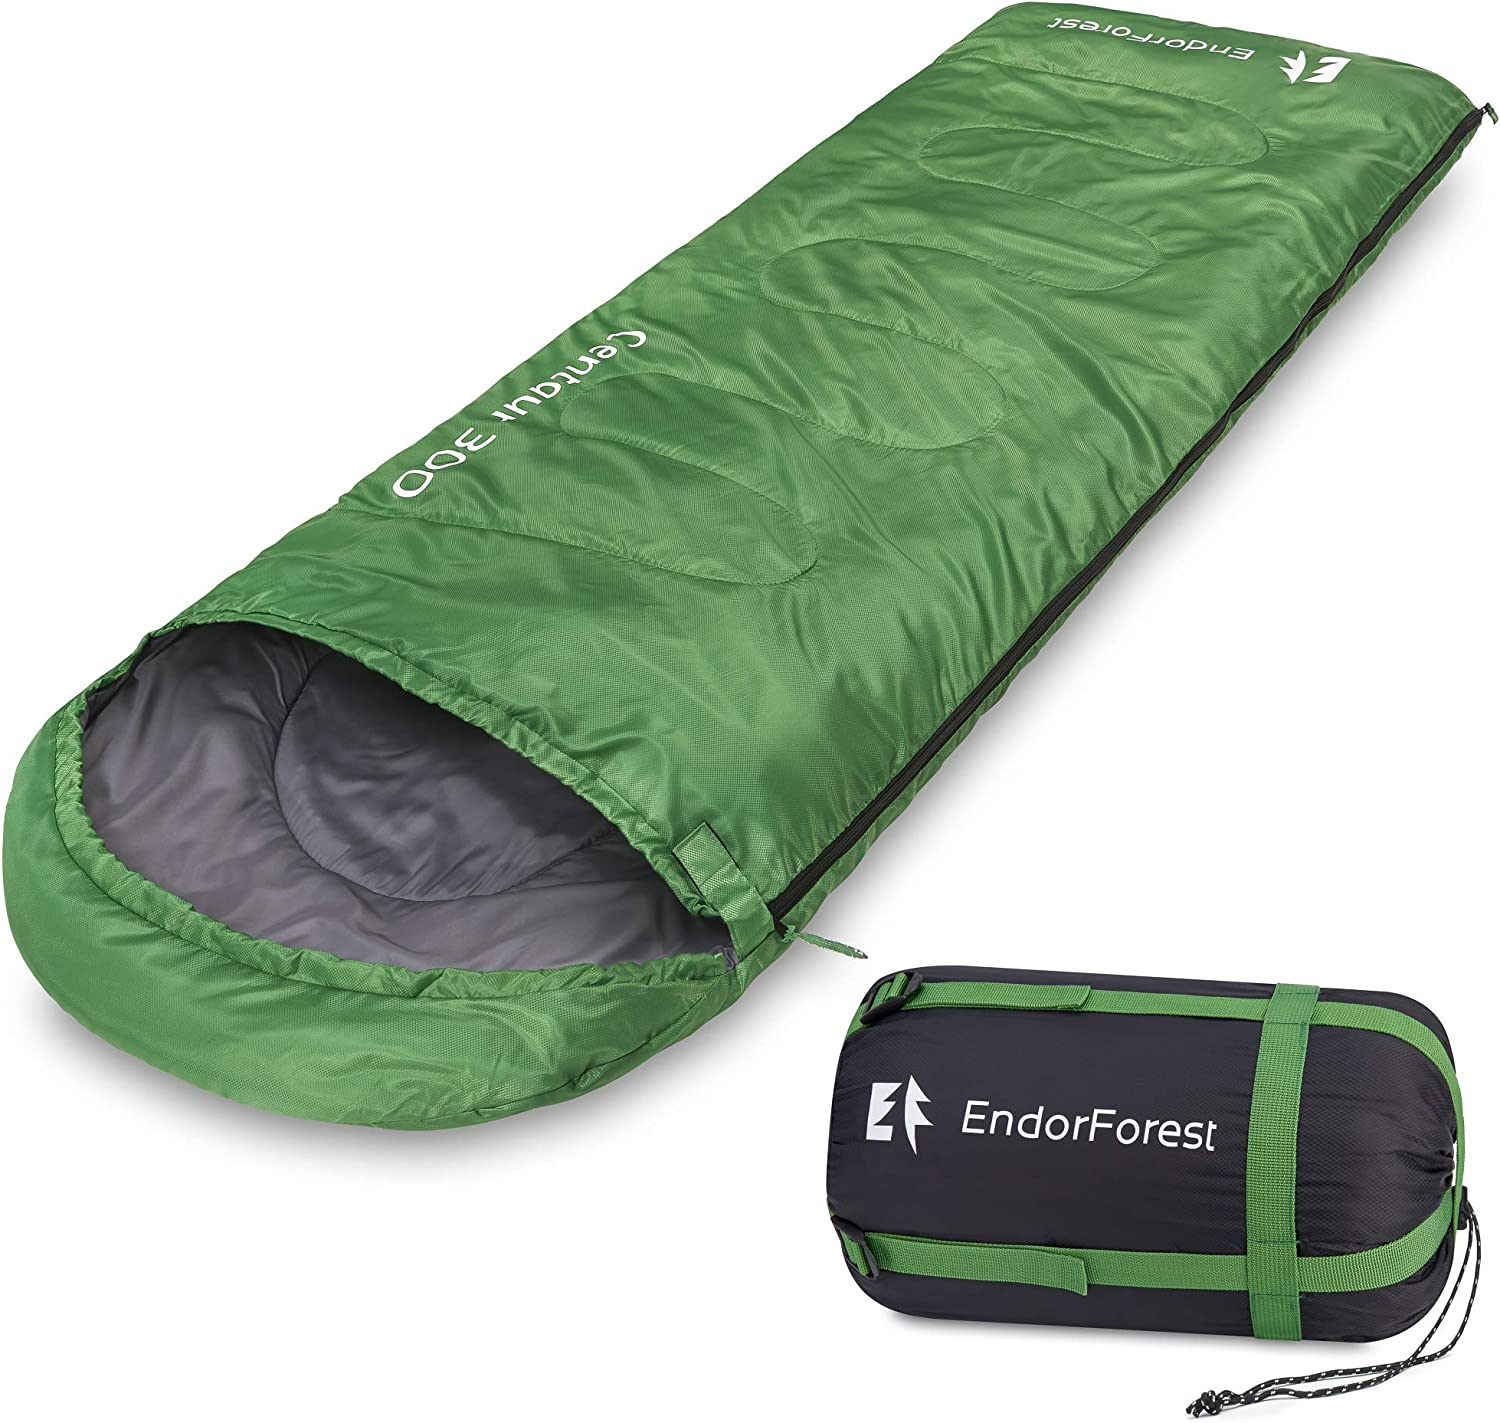 Wind Tour Sleeping Bag Thick and Warm For Cold winter Outdoor Camping 1.3kg UK